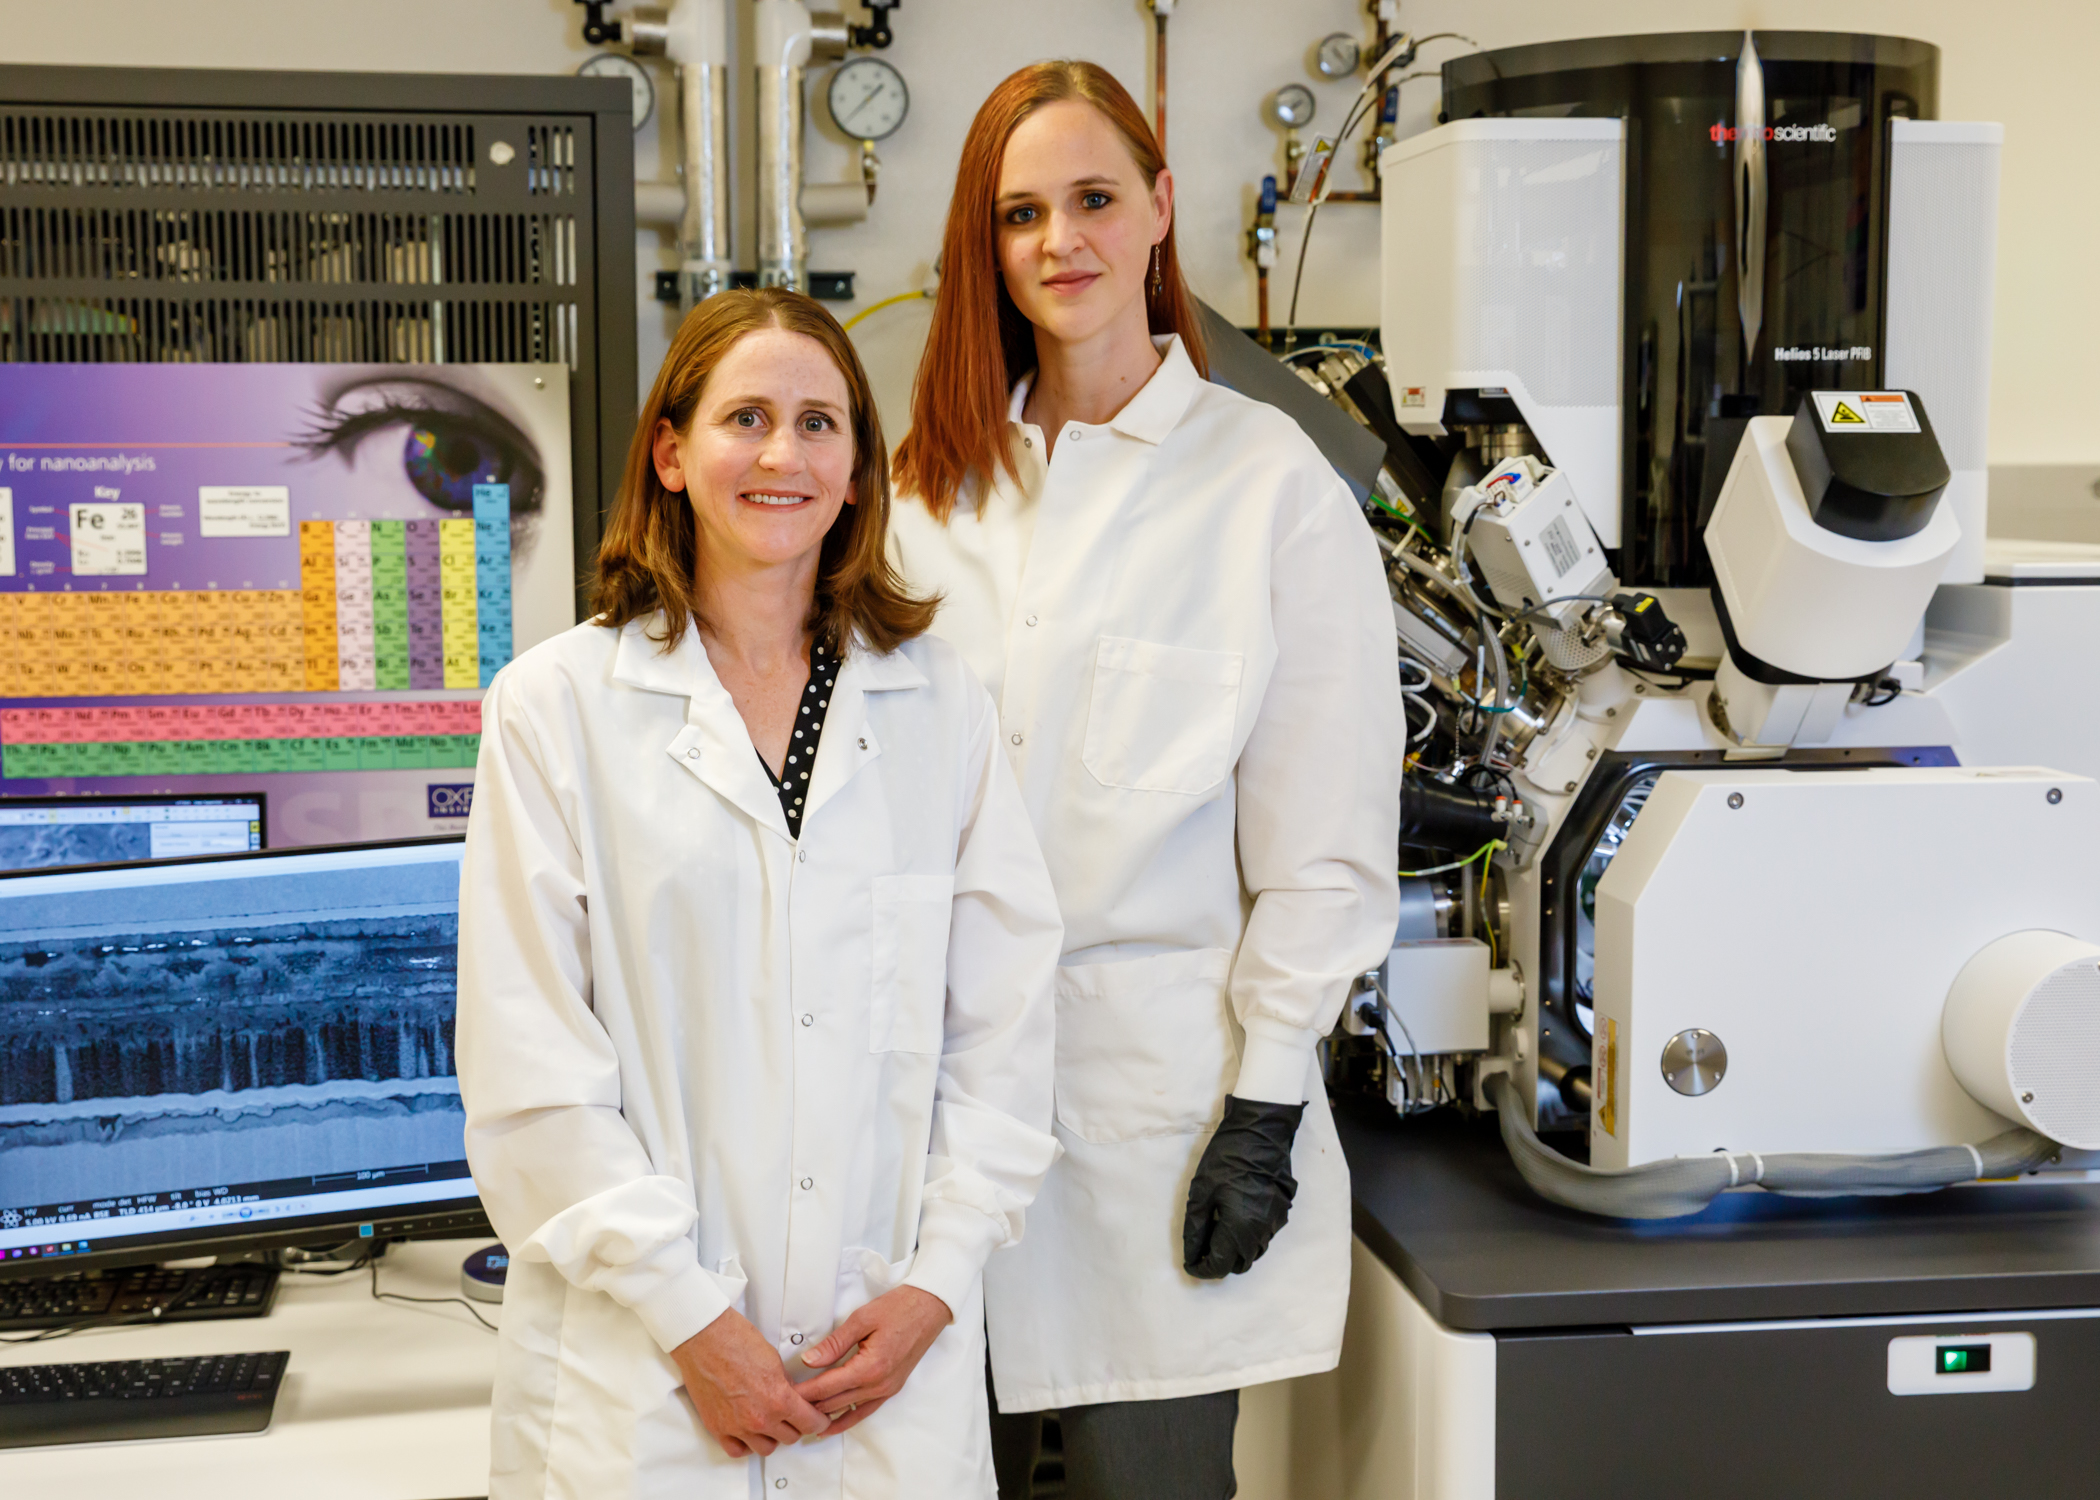 Sandia National Laboratories scientists Katie Harrison, left, and Katie Jungjohann have pioneered a new way to look inside batteries to learn how and why they fail. (Photo by Bret Latter)